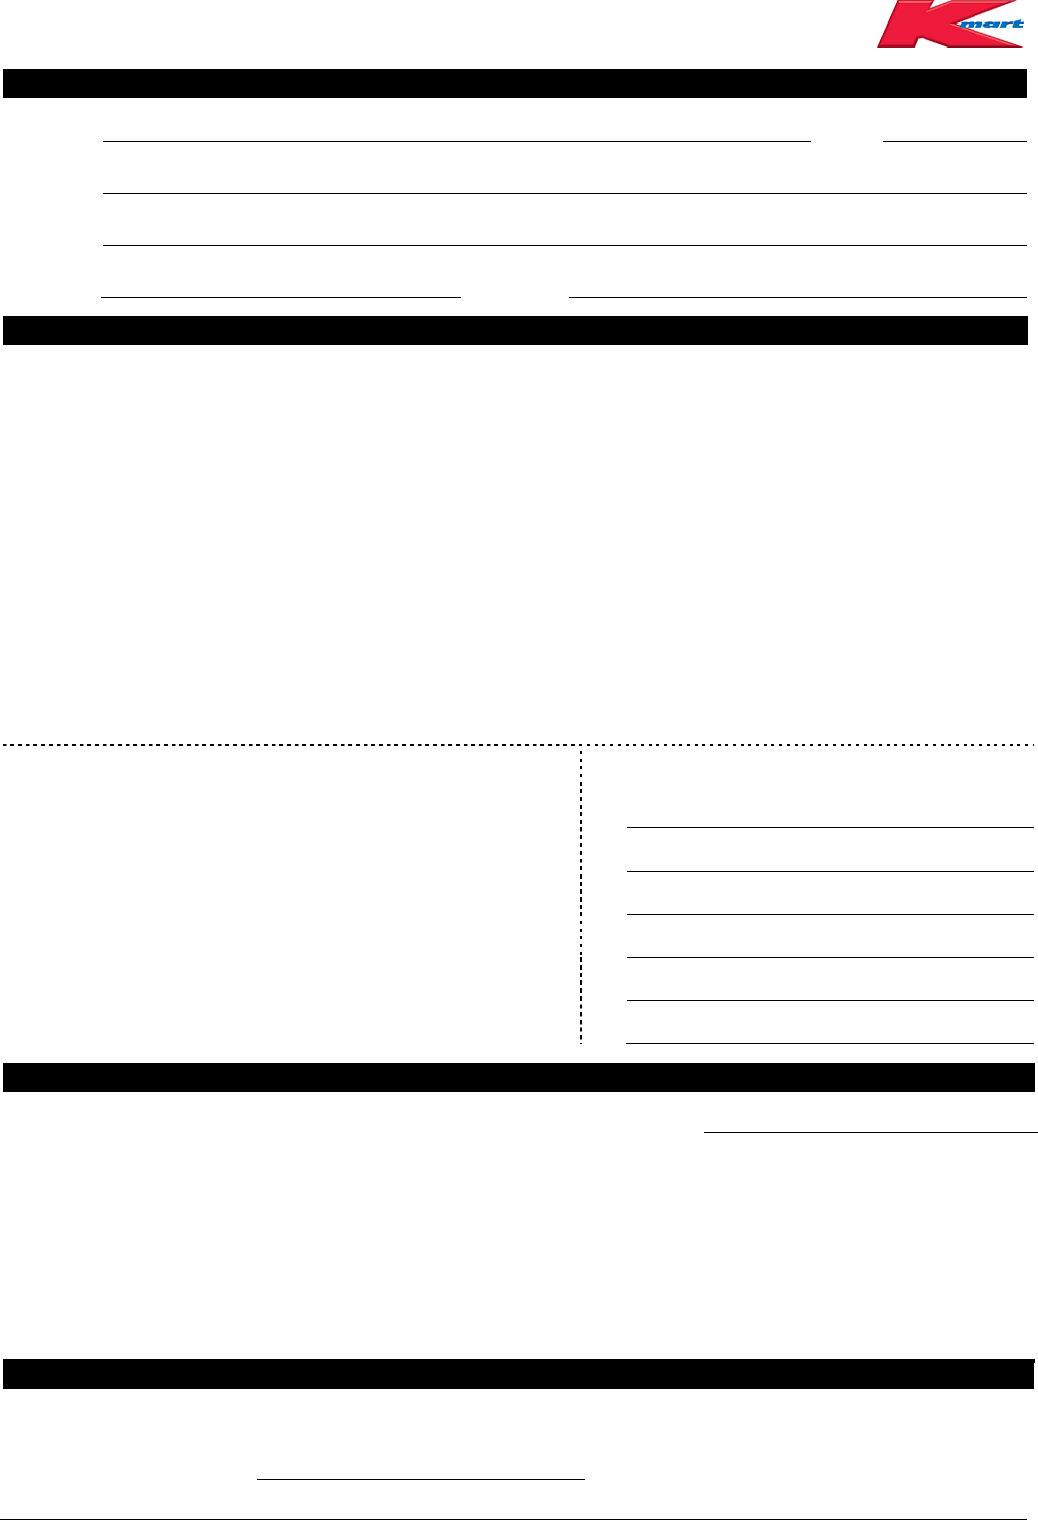 Free Kmart Application Form - PDF | 107KB | 2 Page(s)